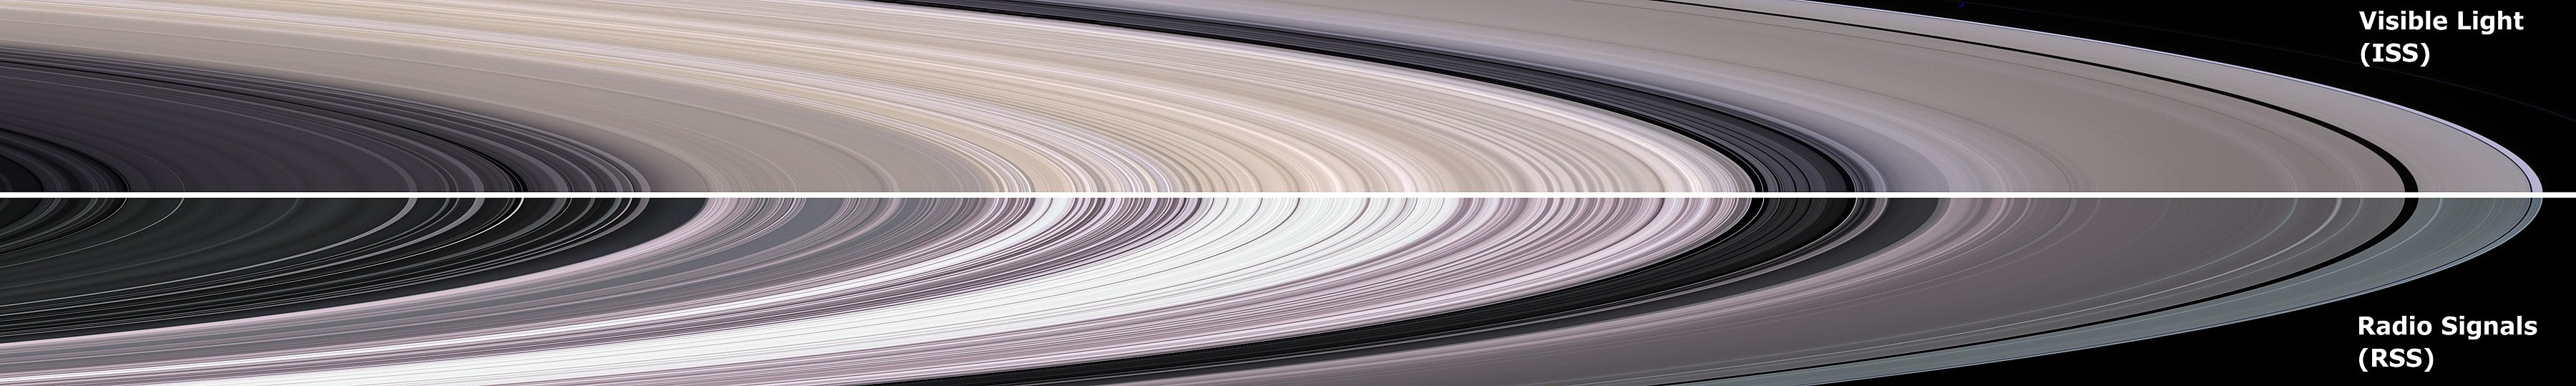 3600px-Saturn's_rings_in_visible_light_and_radio